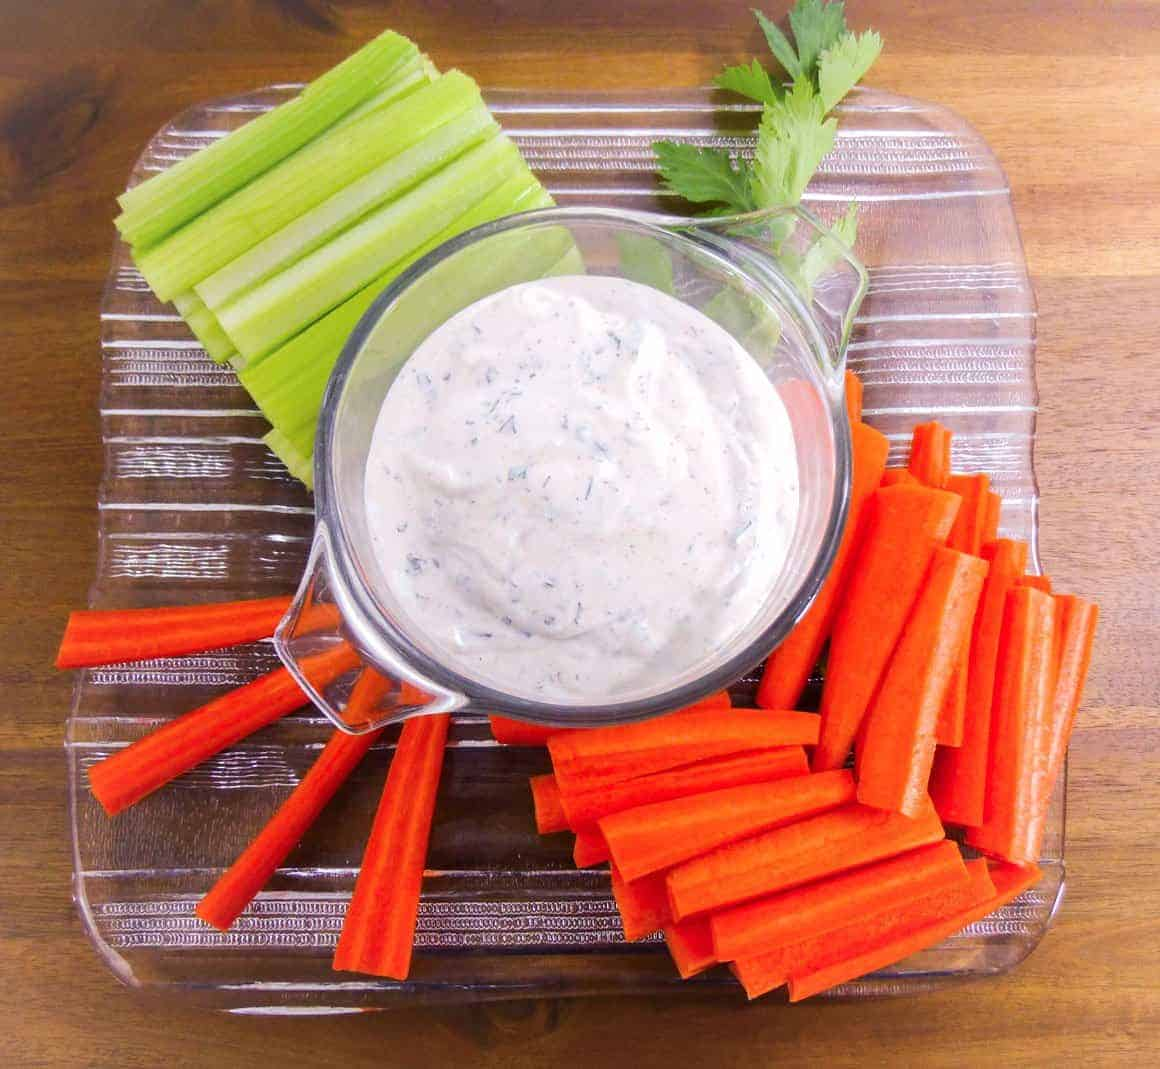 Homemade Buttermilk Ranch Dip with carrots and celery